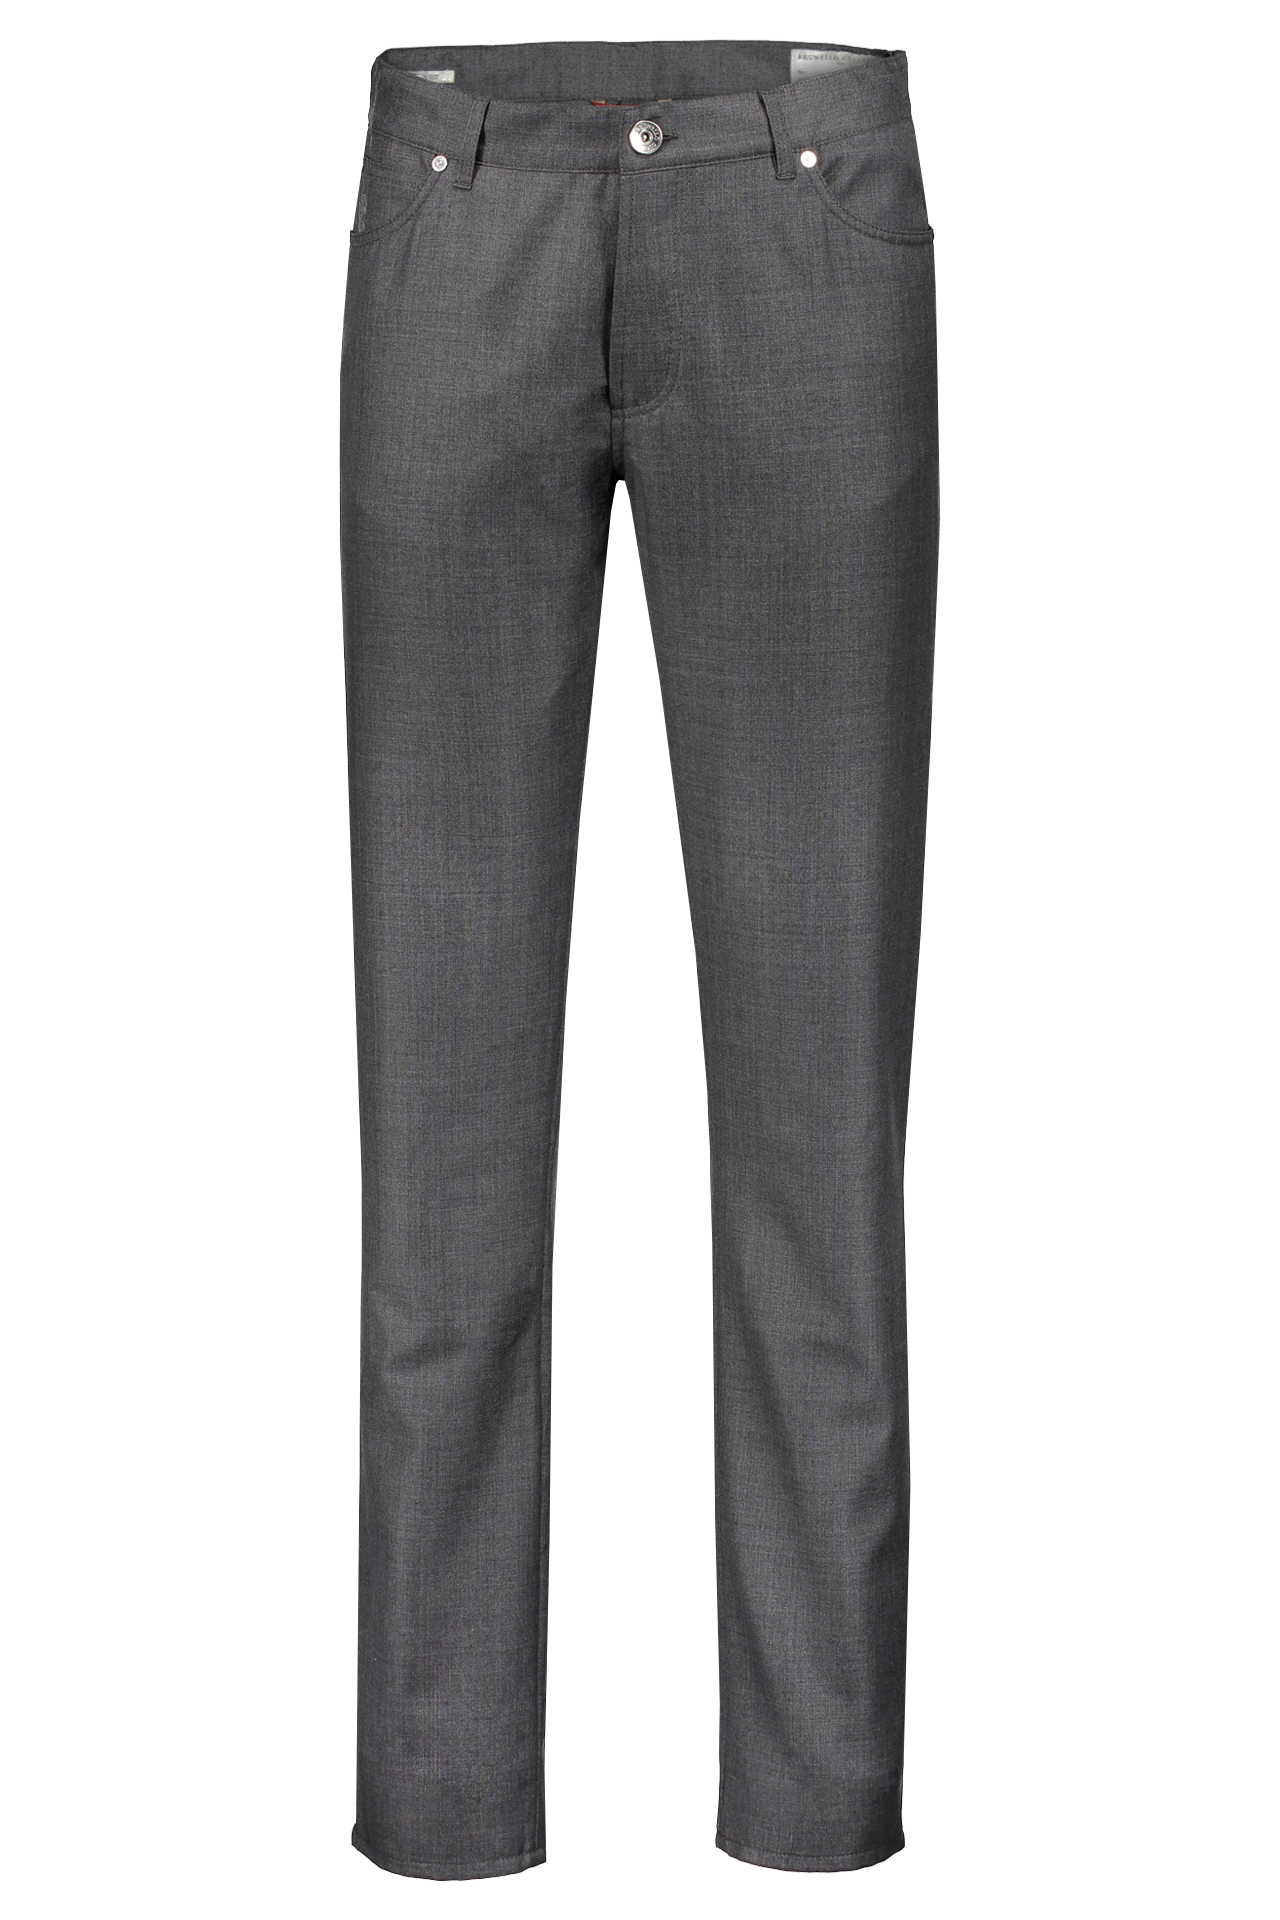 WOOL 5 POCKET PANT GREY